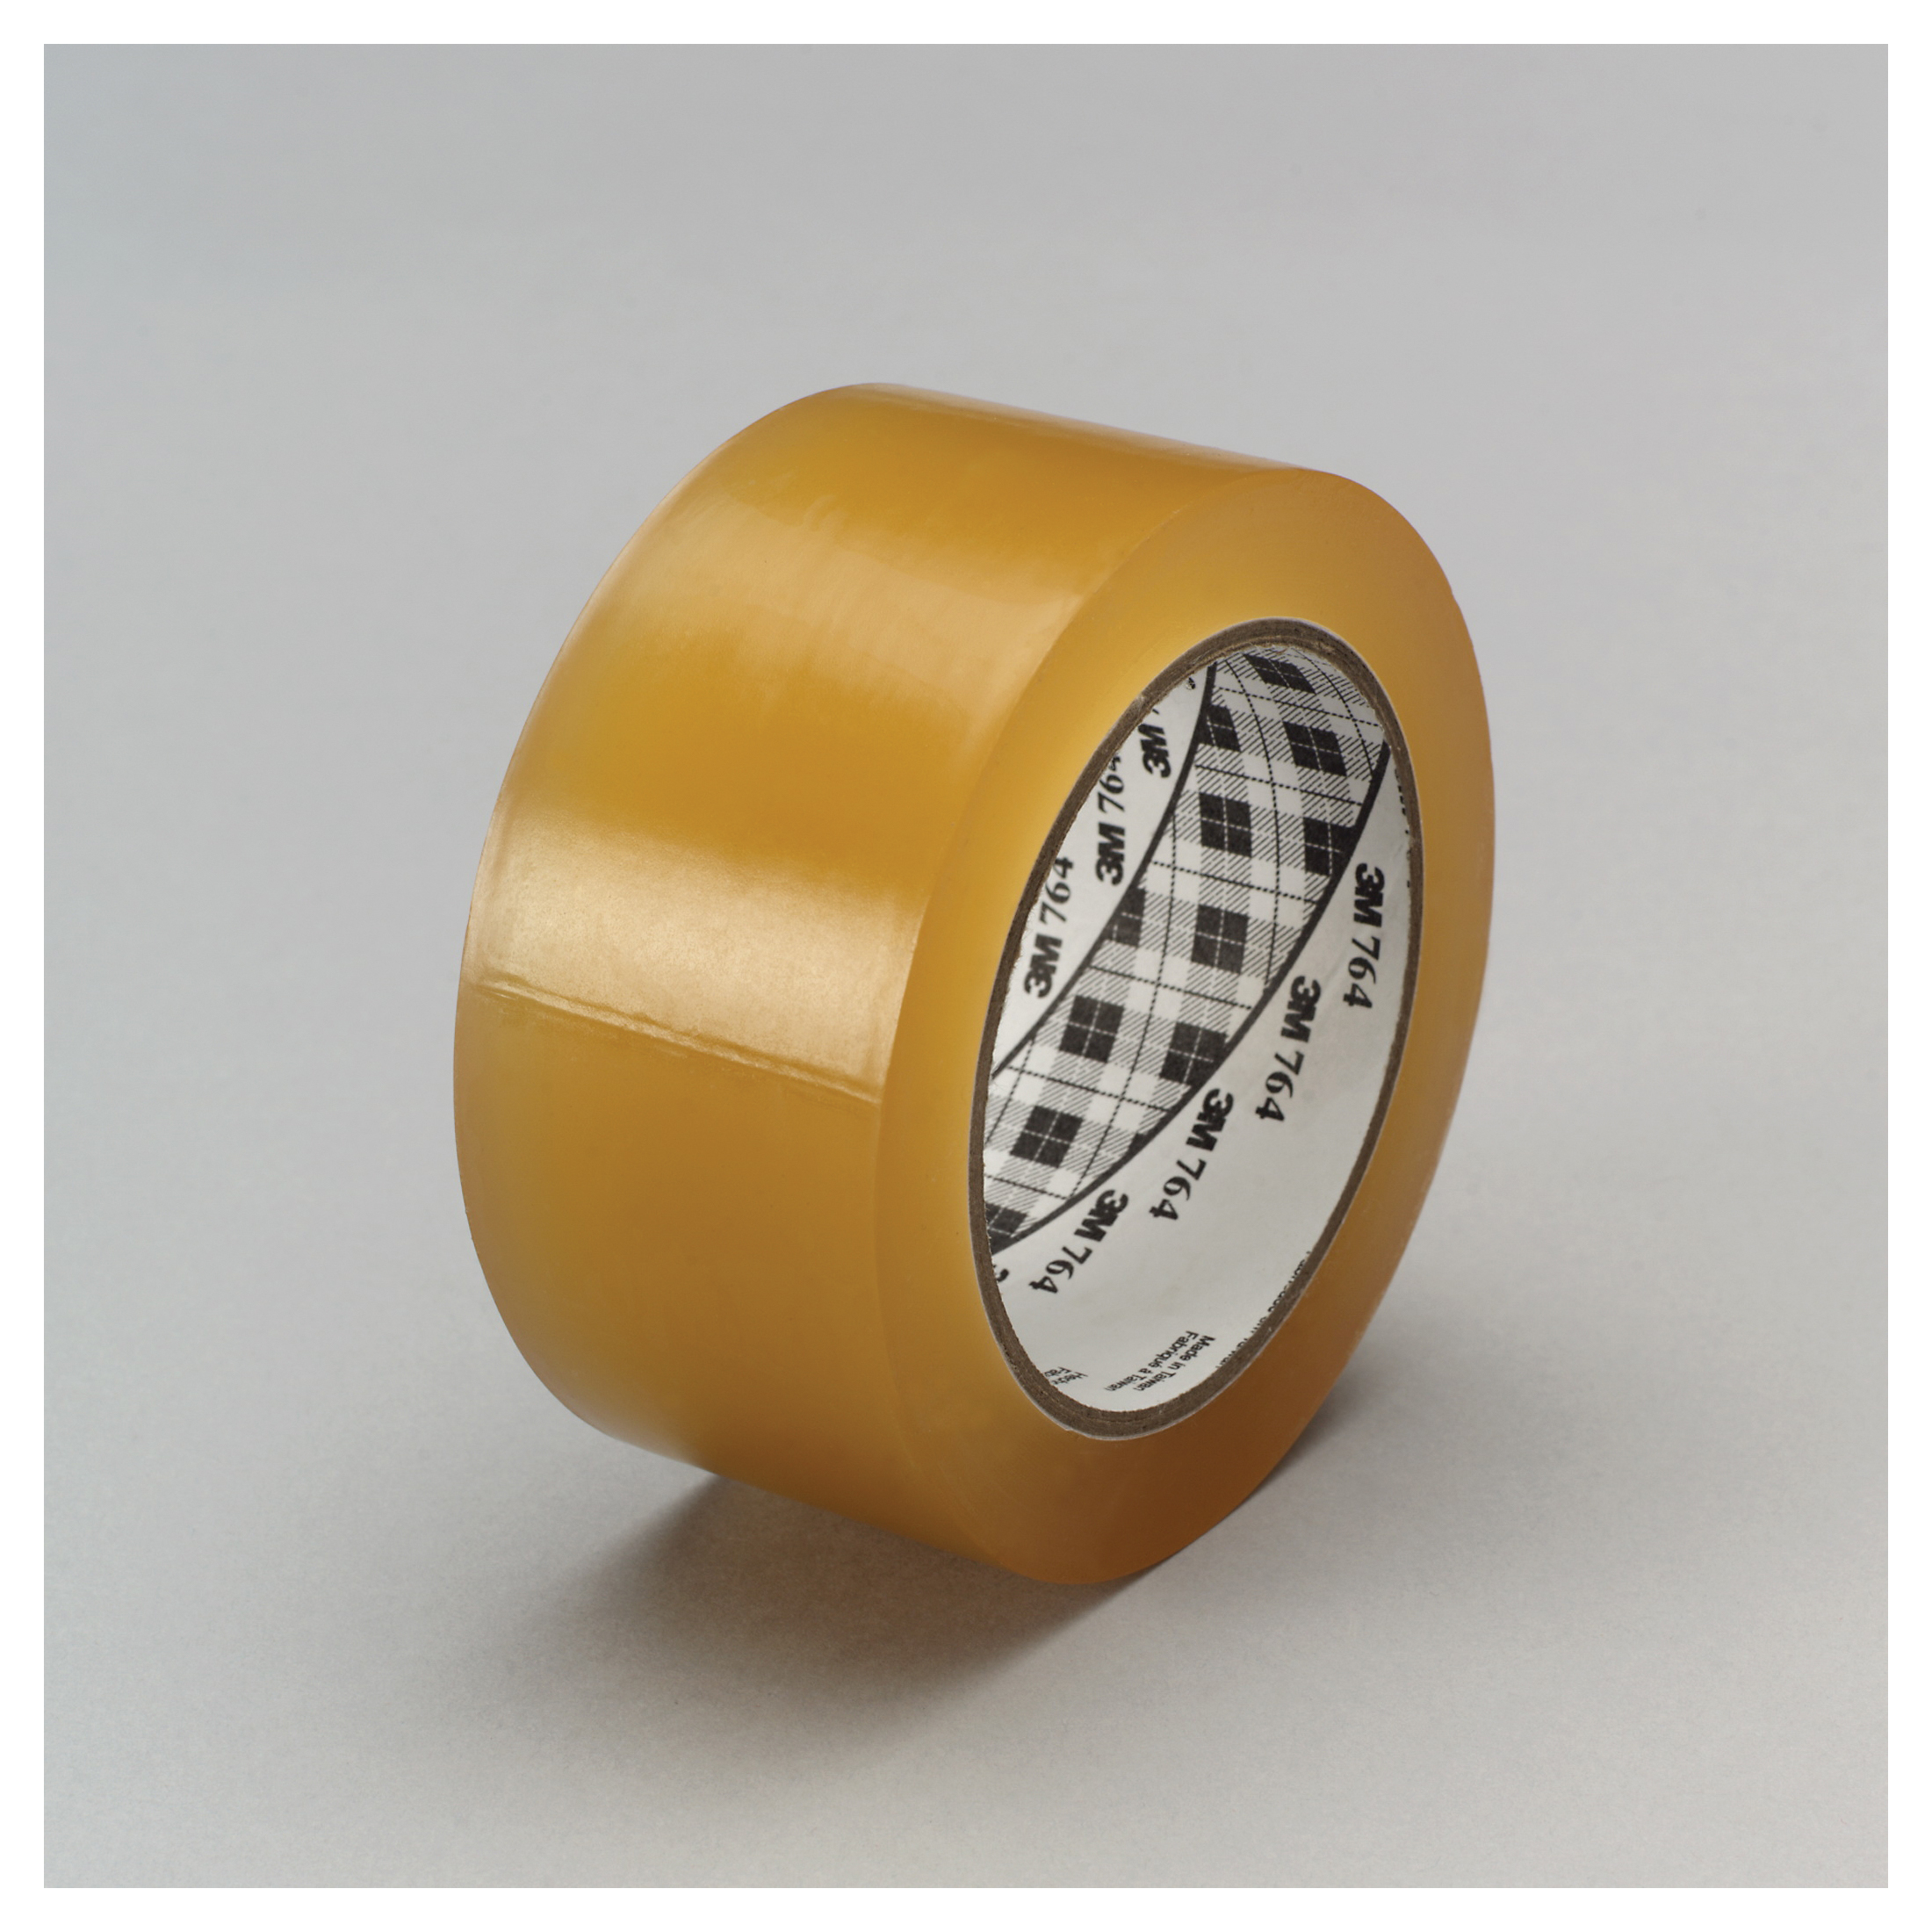 3M™ 021200-43440 General Purpose Vinyl Tape, 36 yd L x 1 in W, 5 mil THK, Rubber Adhesive, PVC Backing, Transparent